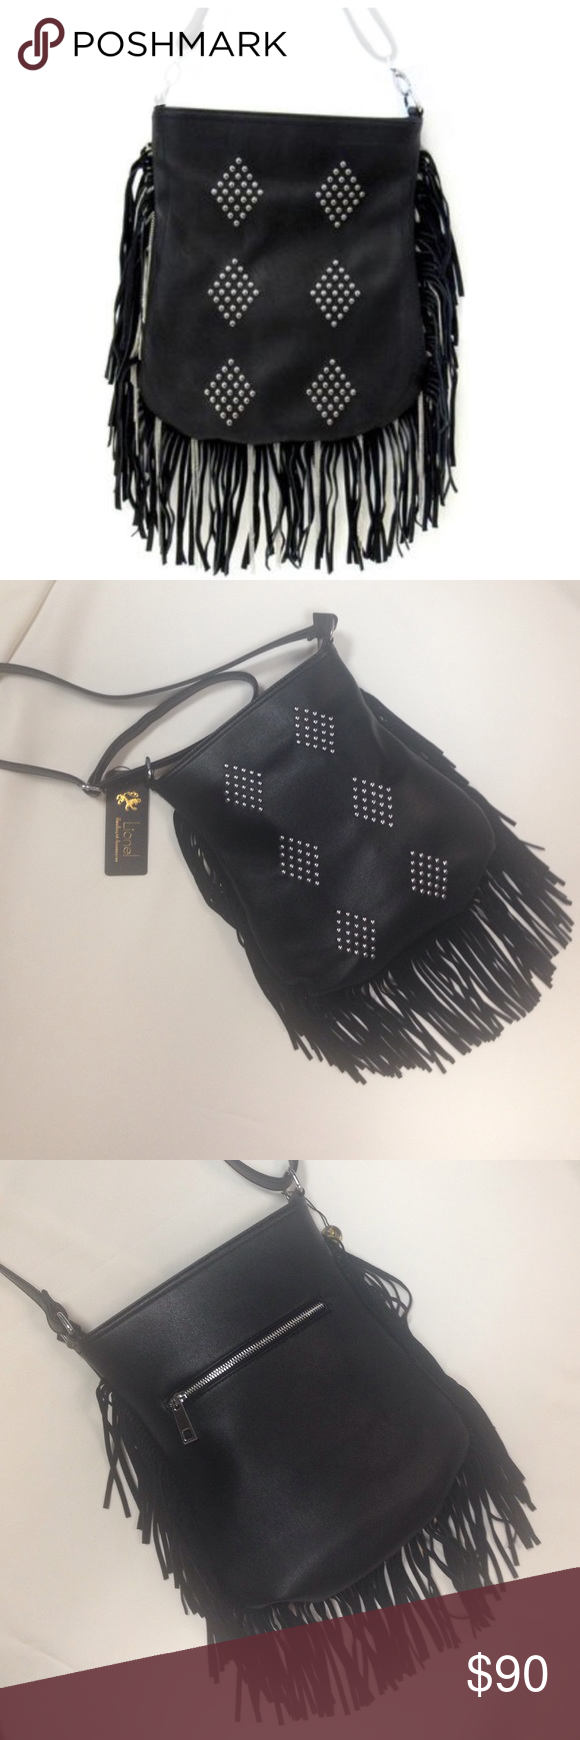 """NWT Black Boho Fringe & Studs Purse NWT.  Fun black shoulder bag with suede fringe and silver studs.  Silver hardware, zipper closure, inside zip pocket and two media pockets, back zipped pocket, adjustable shoulder strap, can be worn as a crossbody. Vegan leather.  Approx measurements laying flat: 12.5"""" H x 11"""" W x 2"""" D. Lionel Bags Shoulder Bags"""